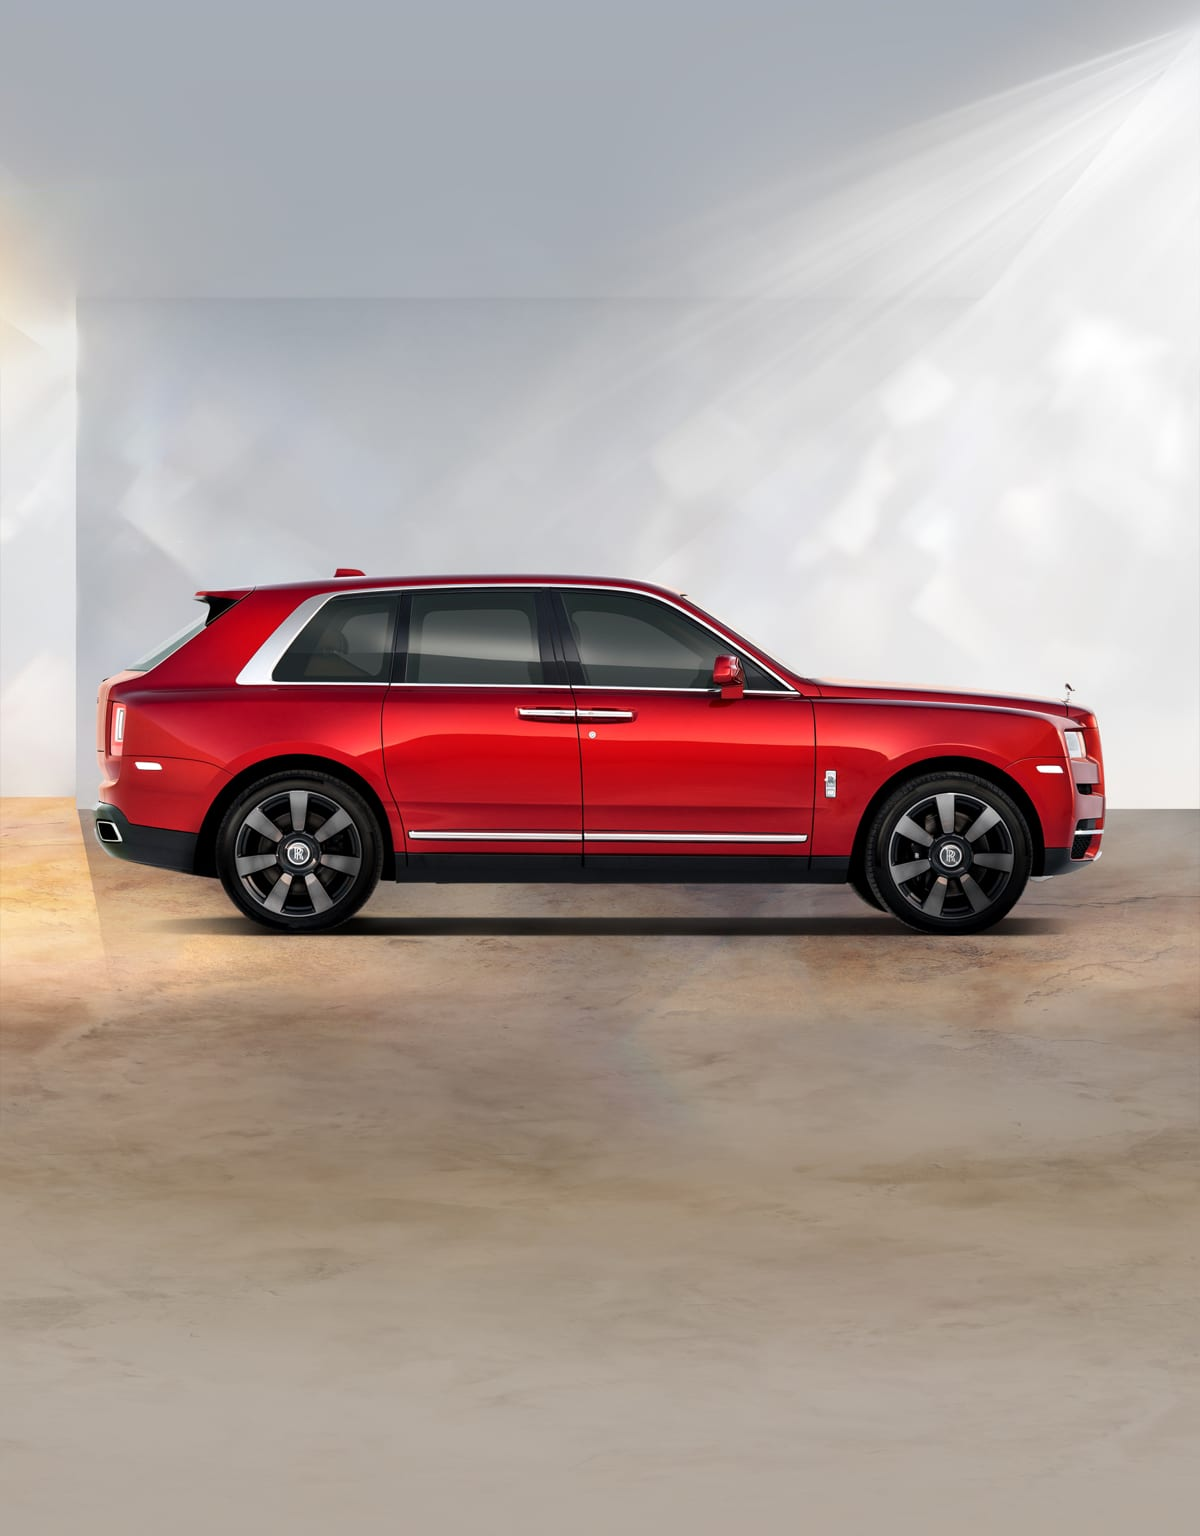 Side profile exterior of Rolls-Royce Cullinan motor car.